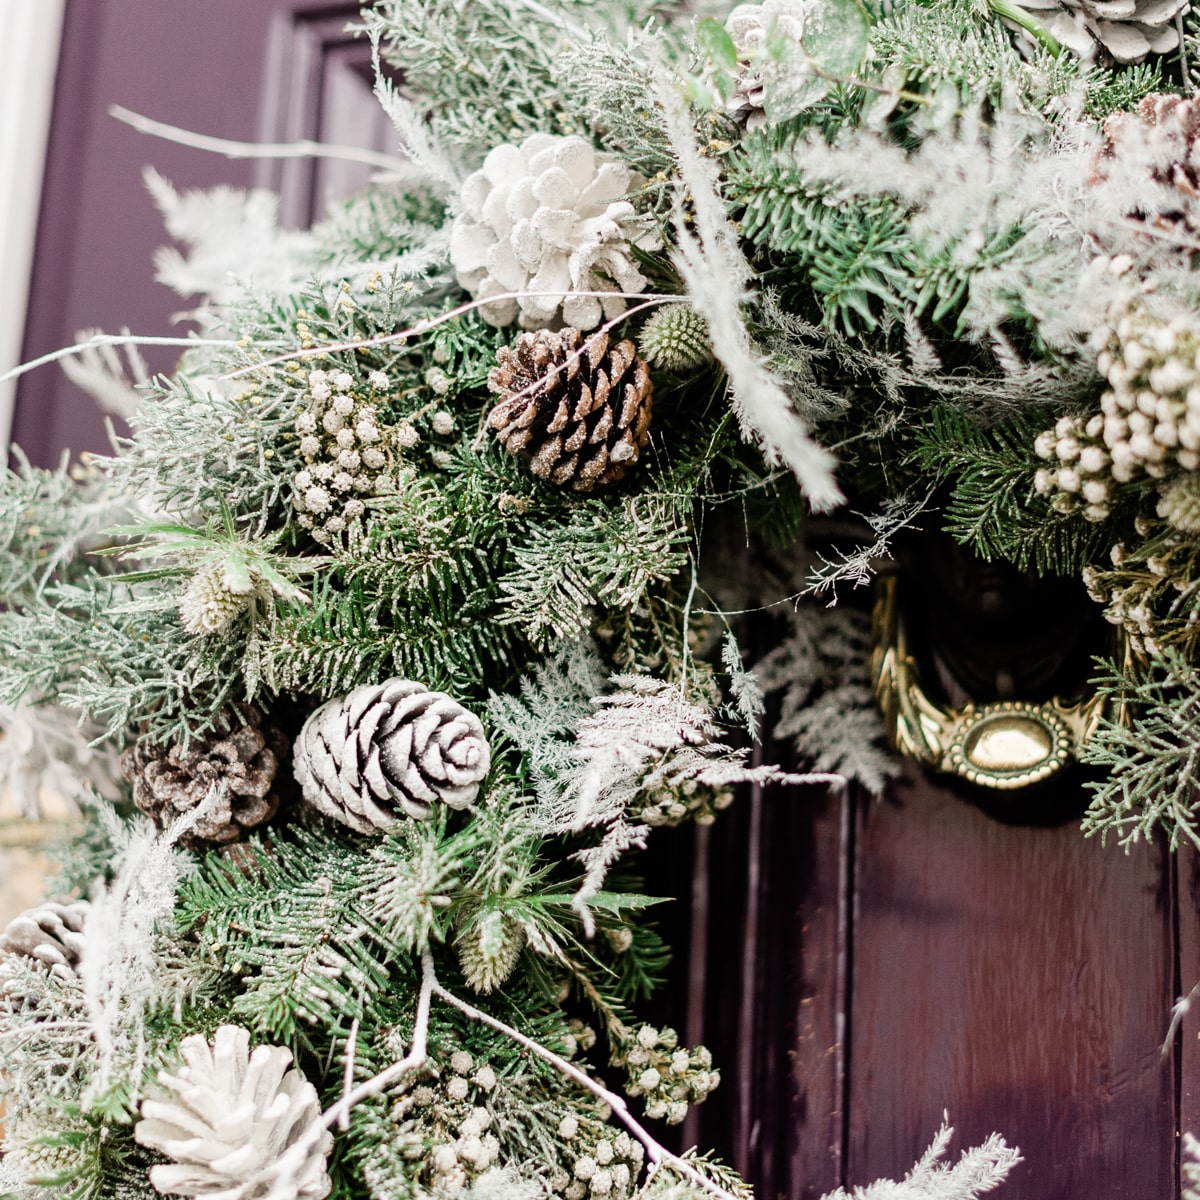 Bloom Flower Delivery | Winter's Morning Wreath